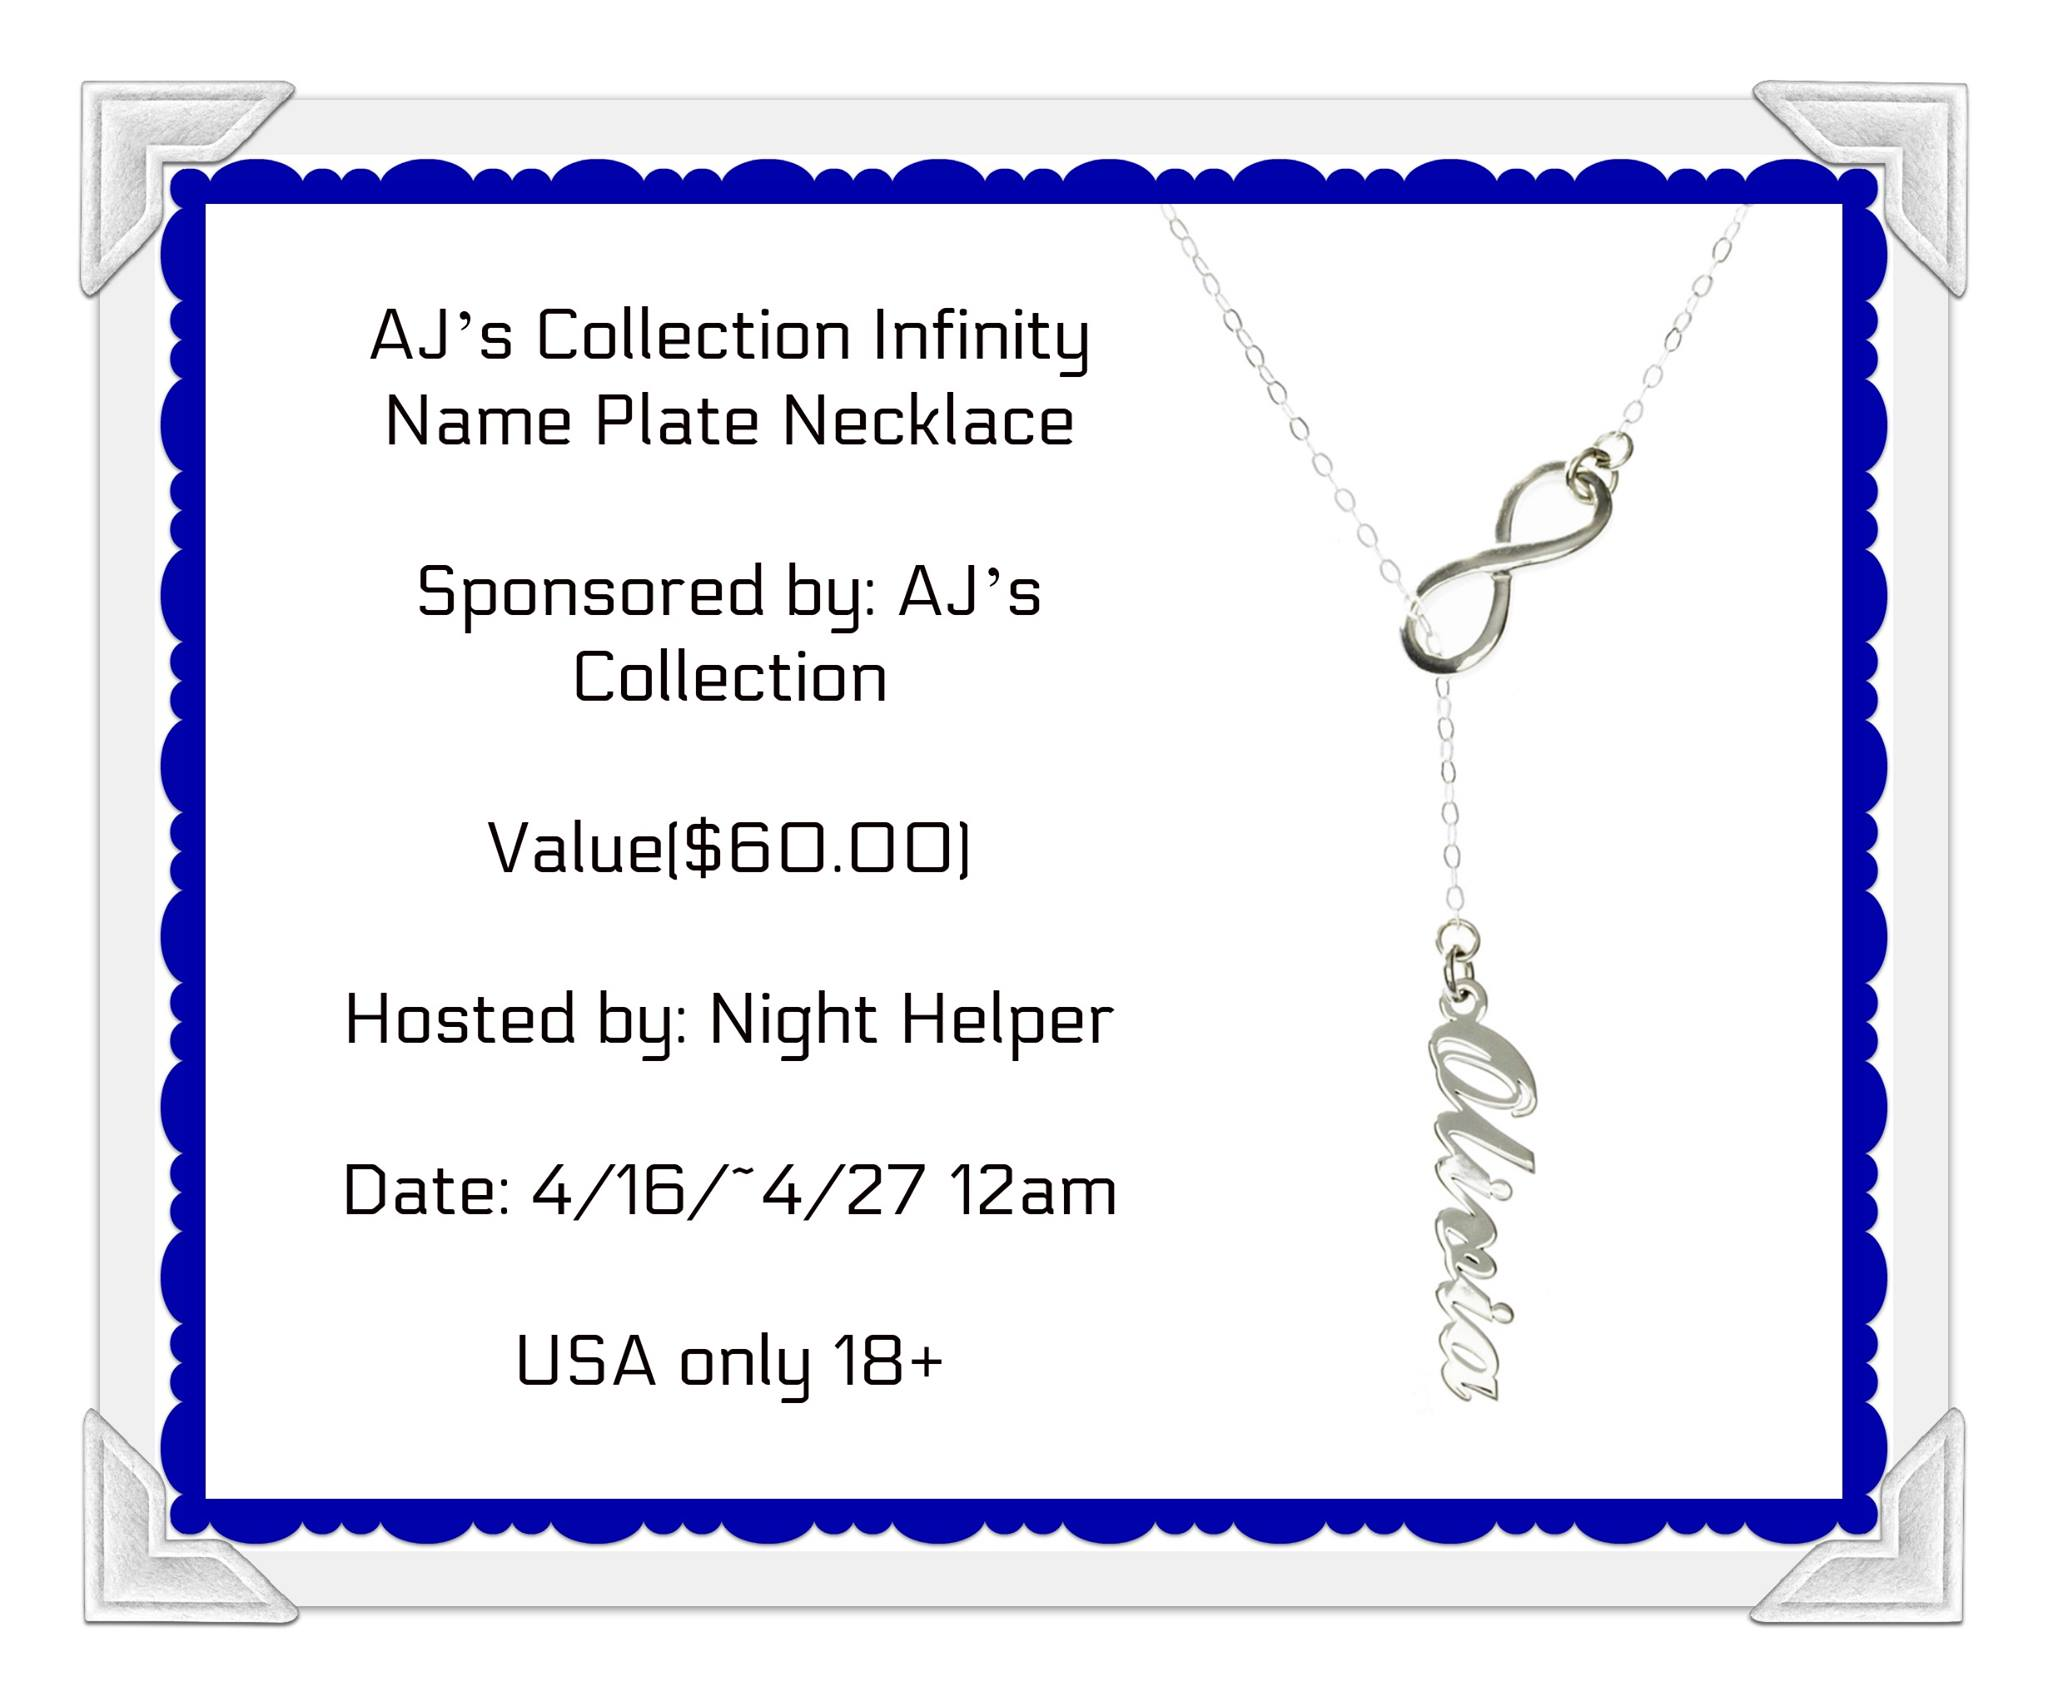 Win A AJ's Collection Infinity Name Plate